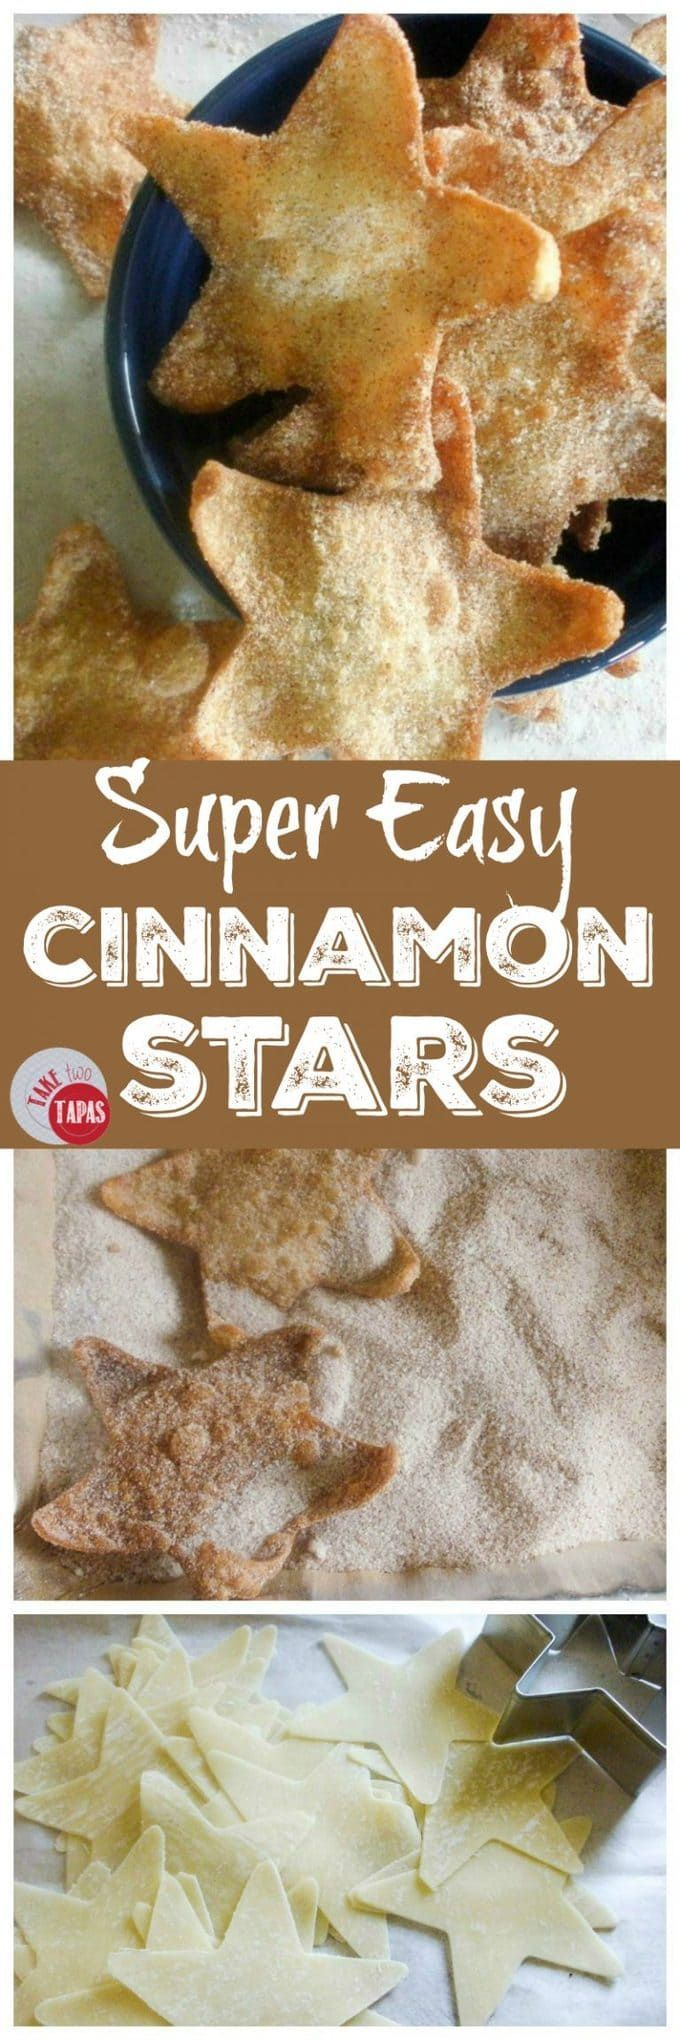 These super easy Cinnamon Stars are made from won ton wrappers and tossed in a cinnamon sugar mixture to add a touch of sweetness! Super Easy Cinnamon Stars Recipe | Take Two Tapas